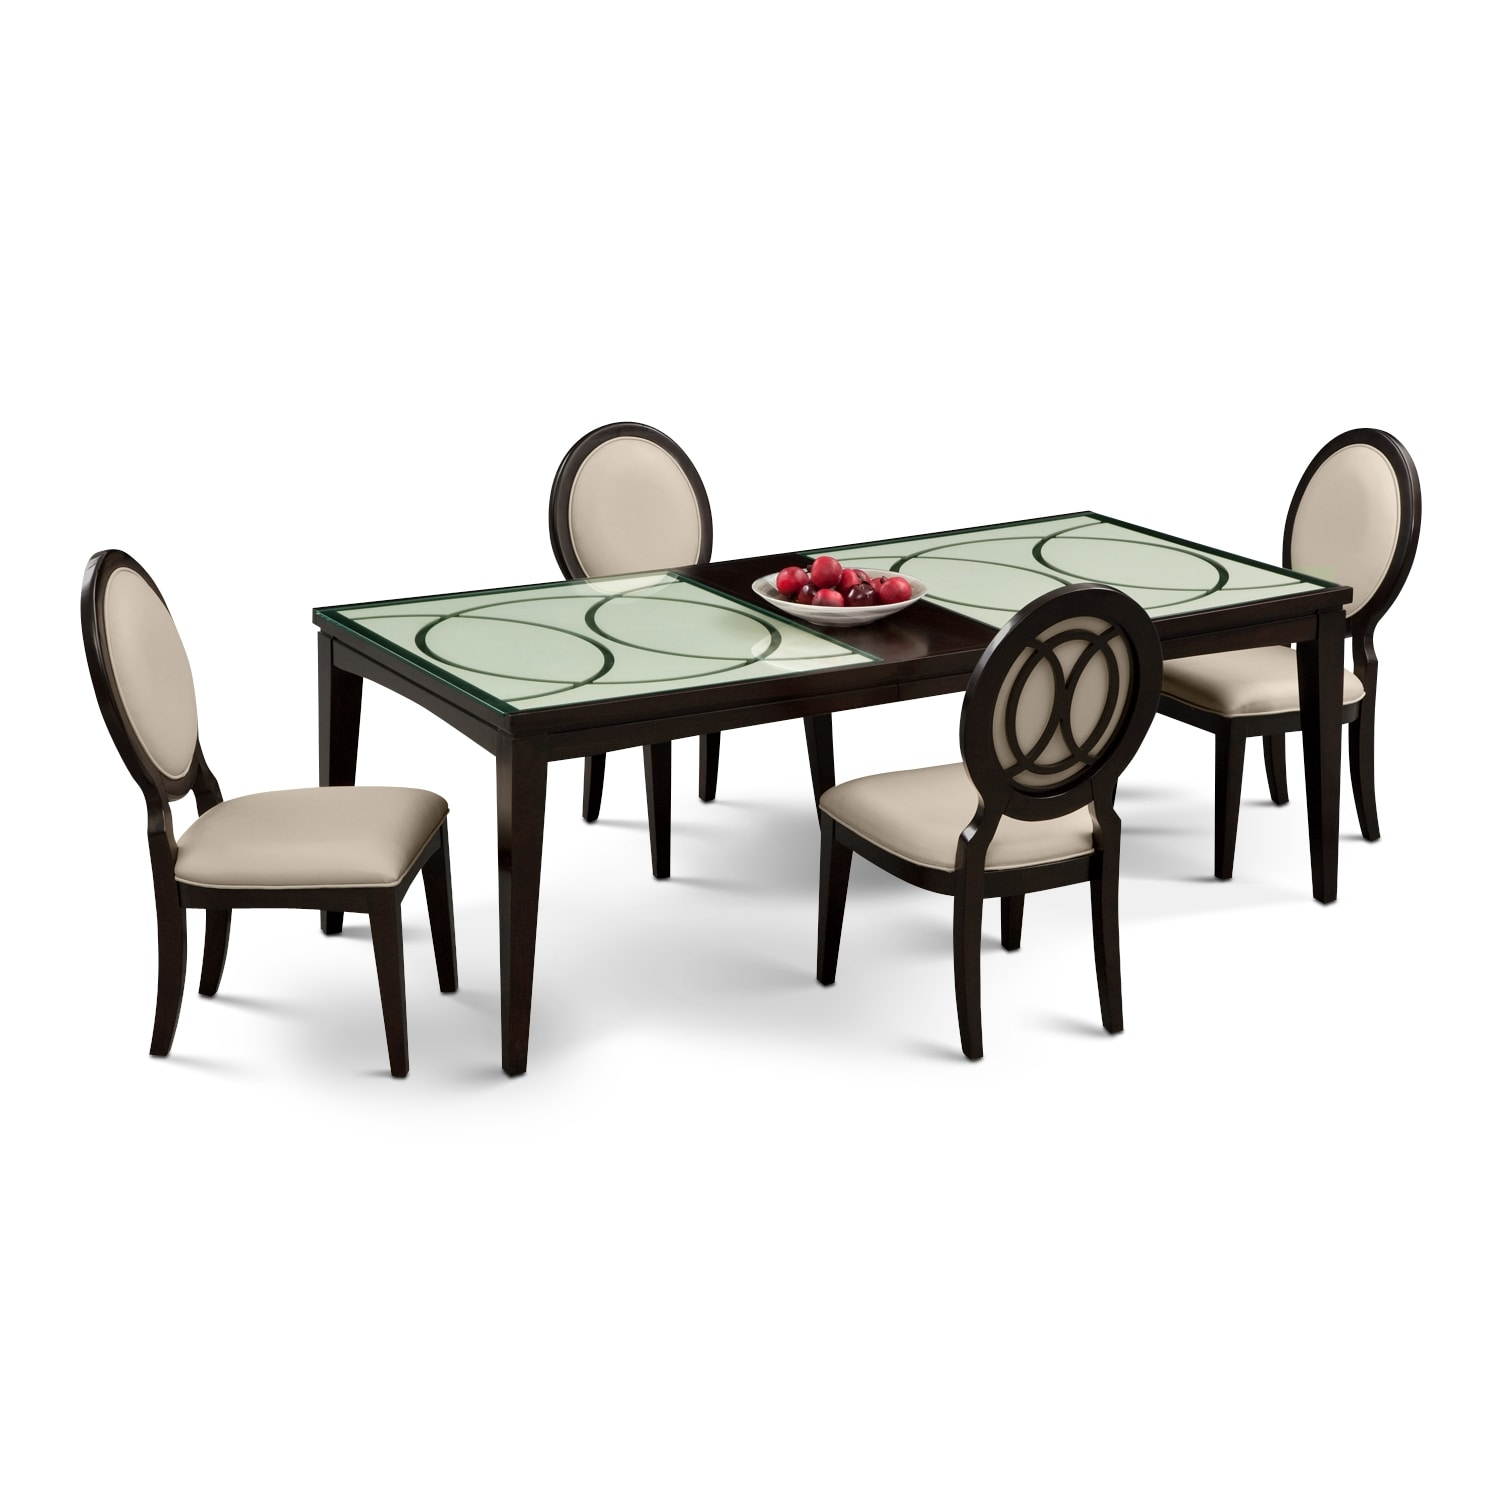 Dining Room Furniture - Cosmo Table and 4 Chairs - Merlot